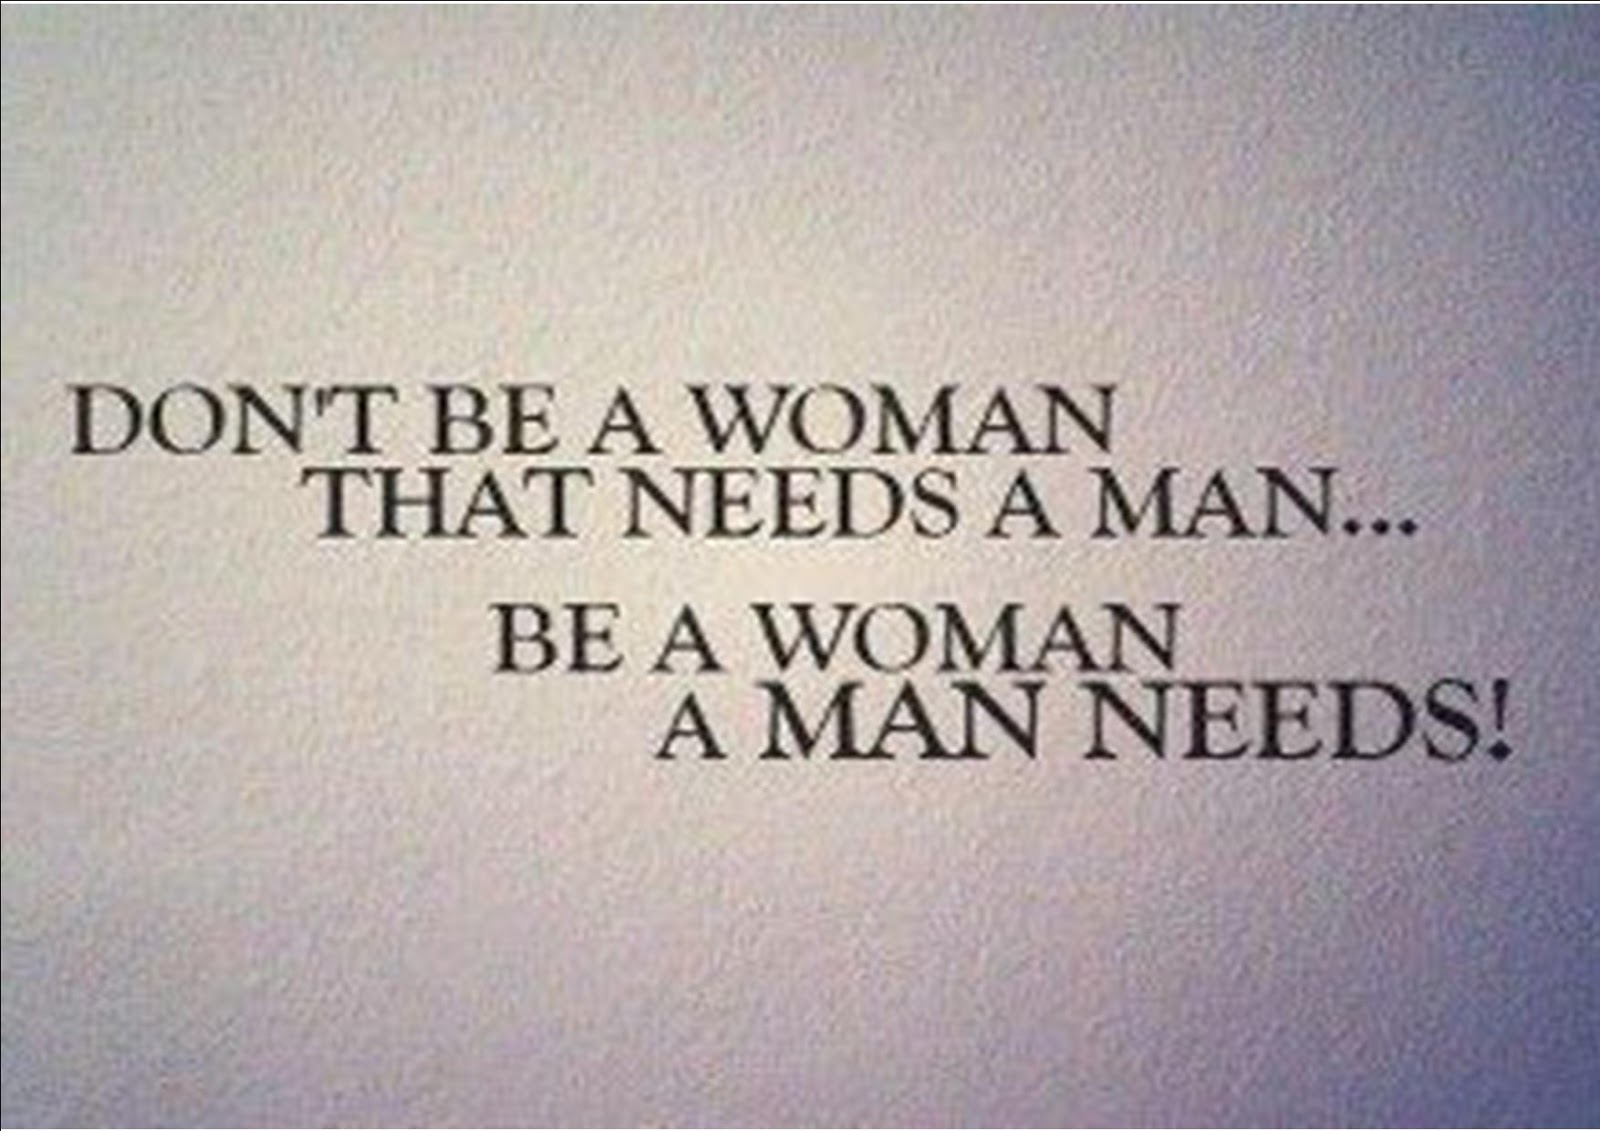 Empowering Women Quotes Women Quotes Tumblr About Men Pinterest Funny And Sayings Islam